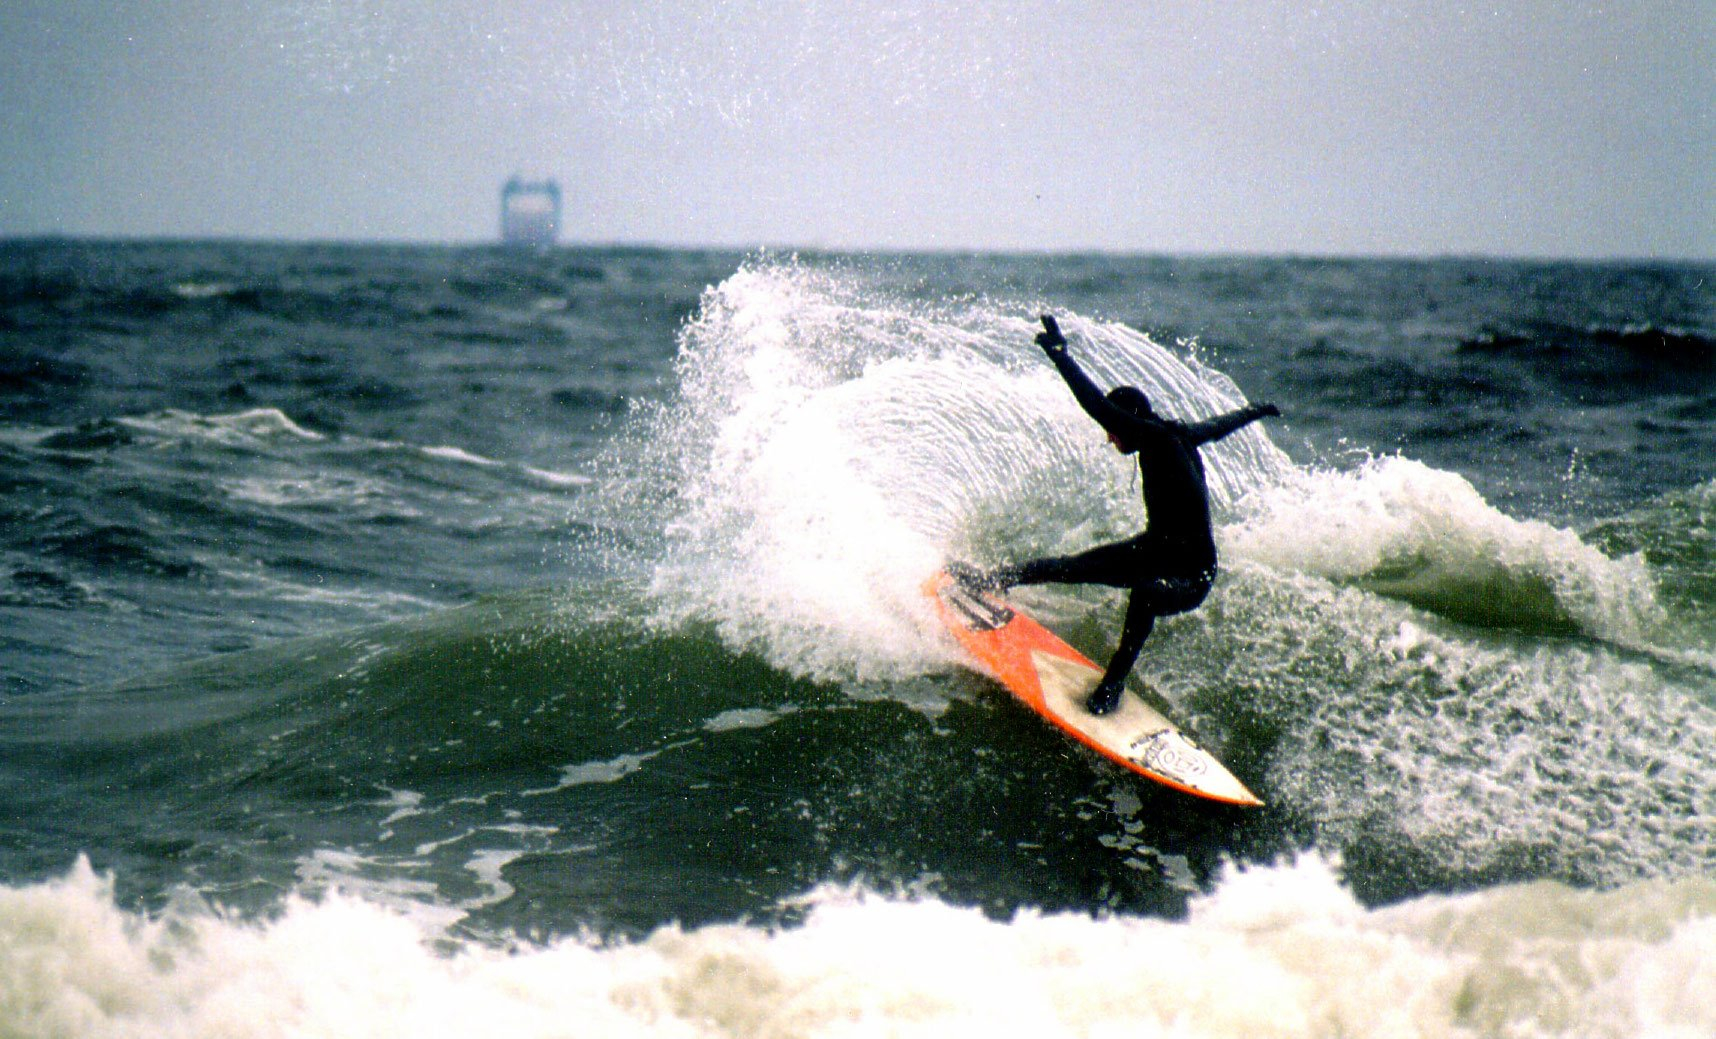 """Riding a """"shortboard"""" in 2002. Even then I went with shapes that had less rocker and a bit more volume, as I felt they worked better in the conditions I was normally surfing. Photo: Donna Zappo"""